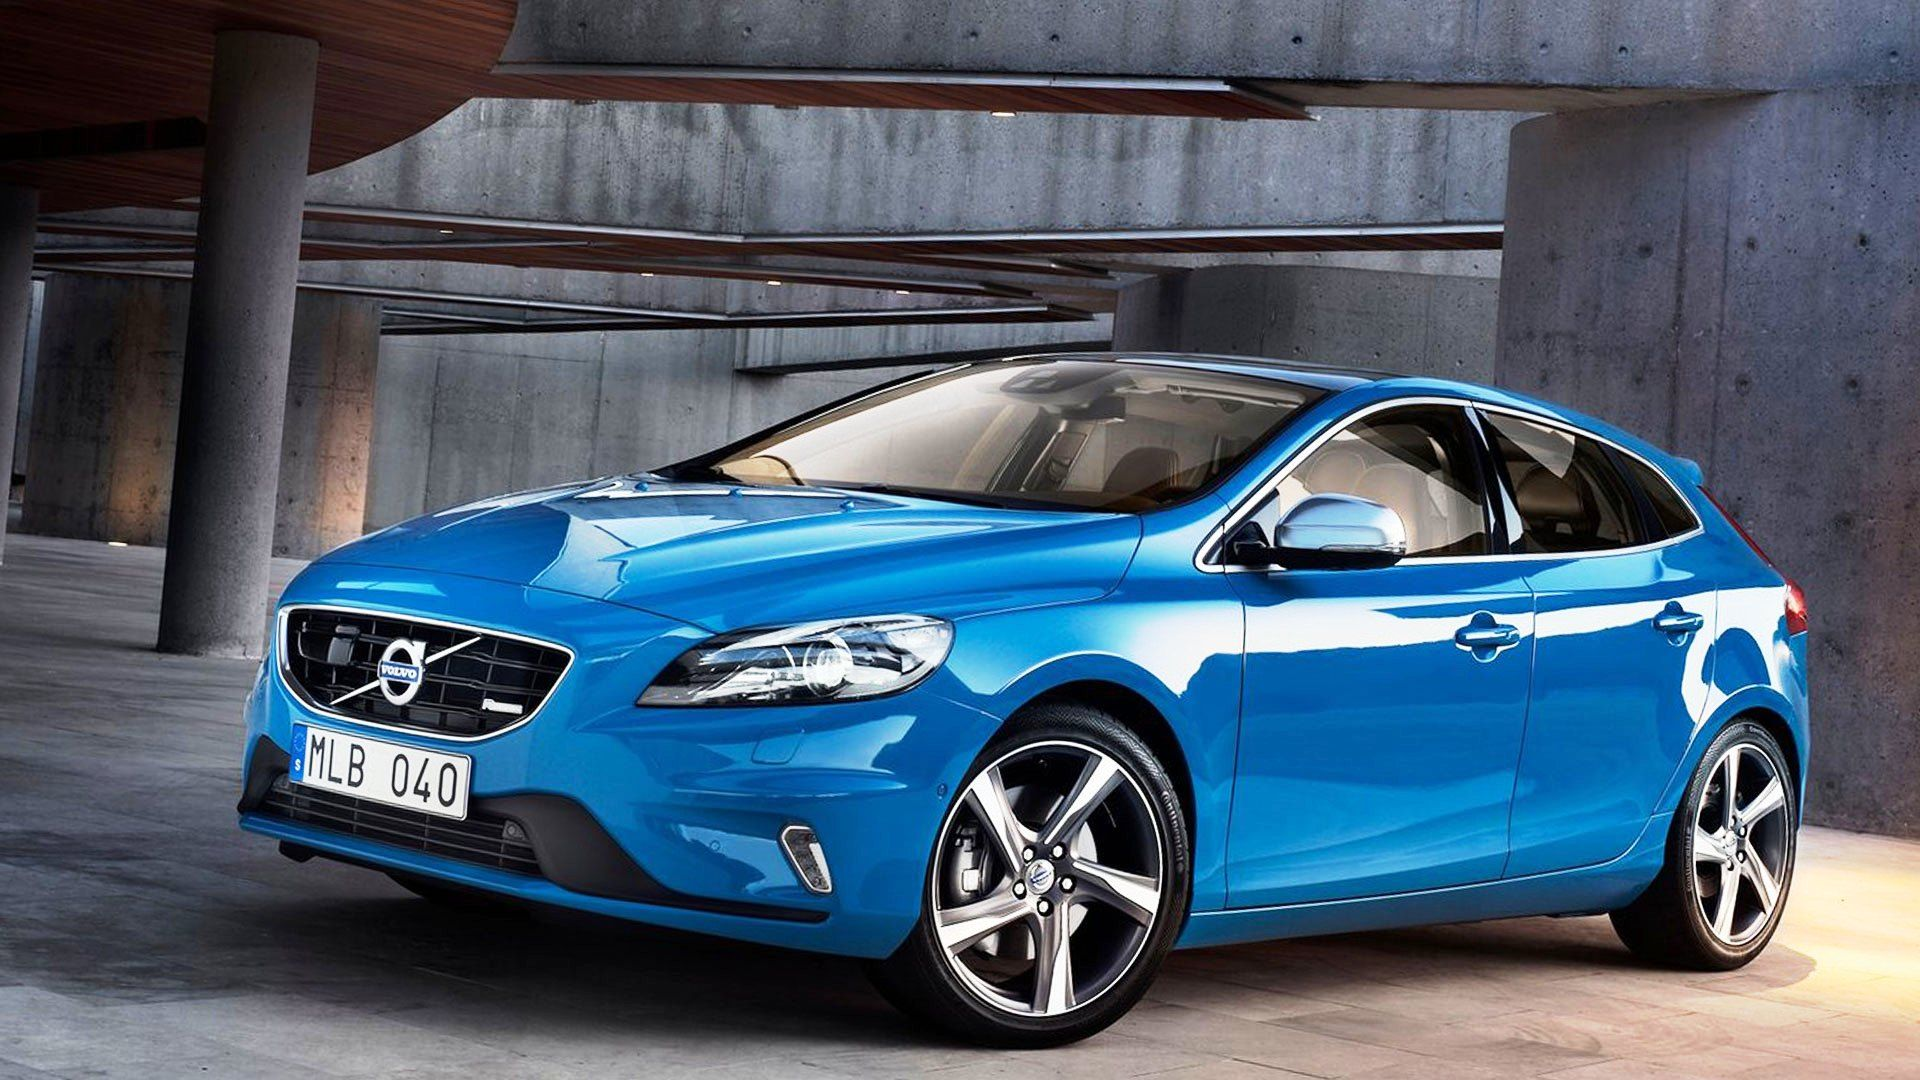 volvo v40 r design performance 1920 1080 nice rides pinterest cars. Black Bedroom Furniture Sets. Home Design Ideas